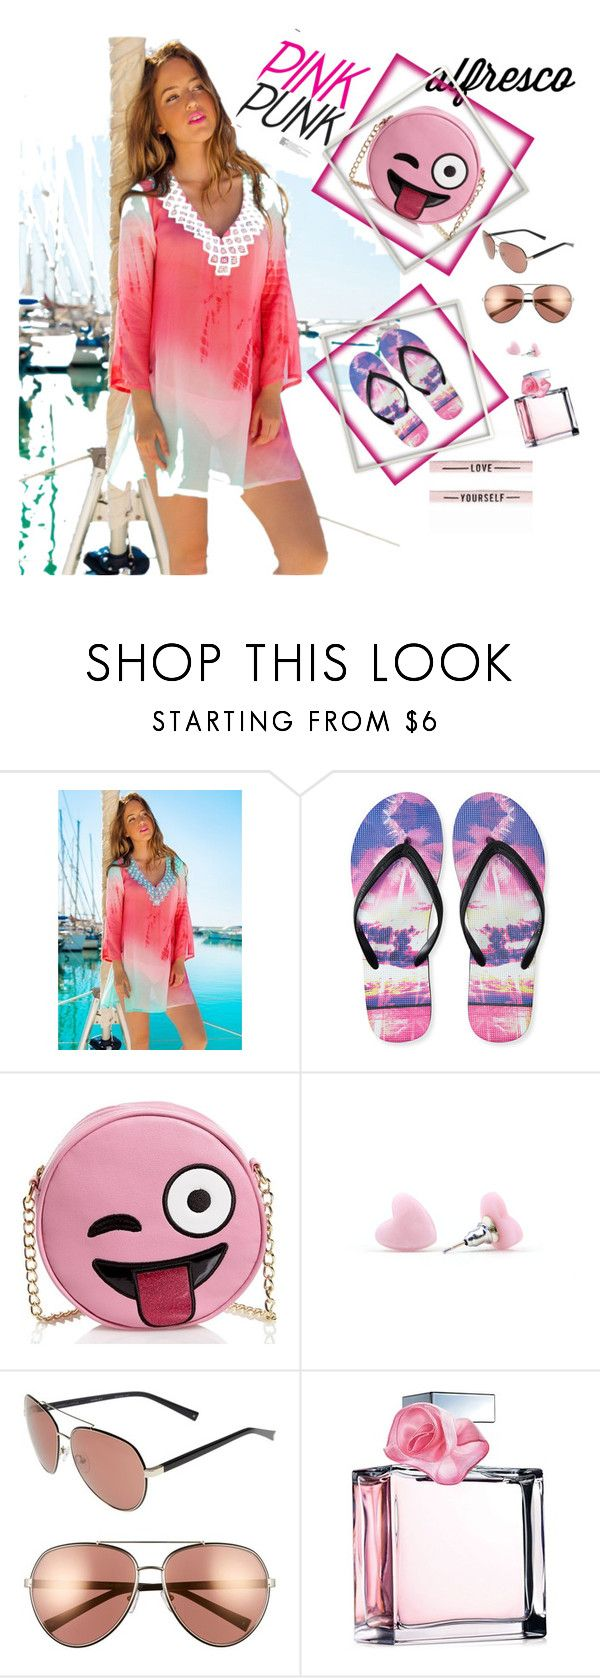 """summer breeze!🔥💎"" by olivia204 ❤ liked on Polyvore featuring Aéropostale, Olivia Miller, Kendall + Kylie and Ralph Lauren"